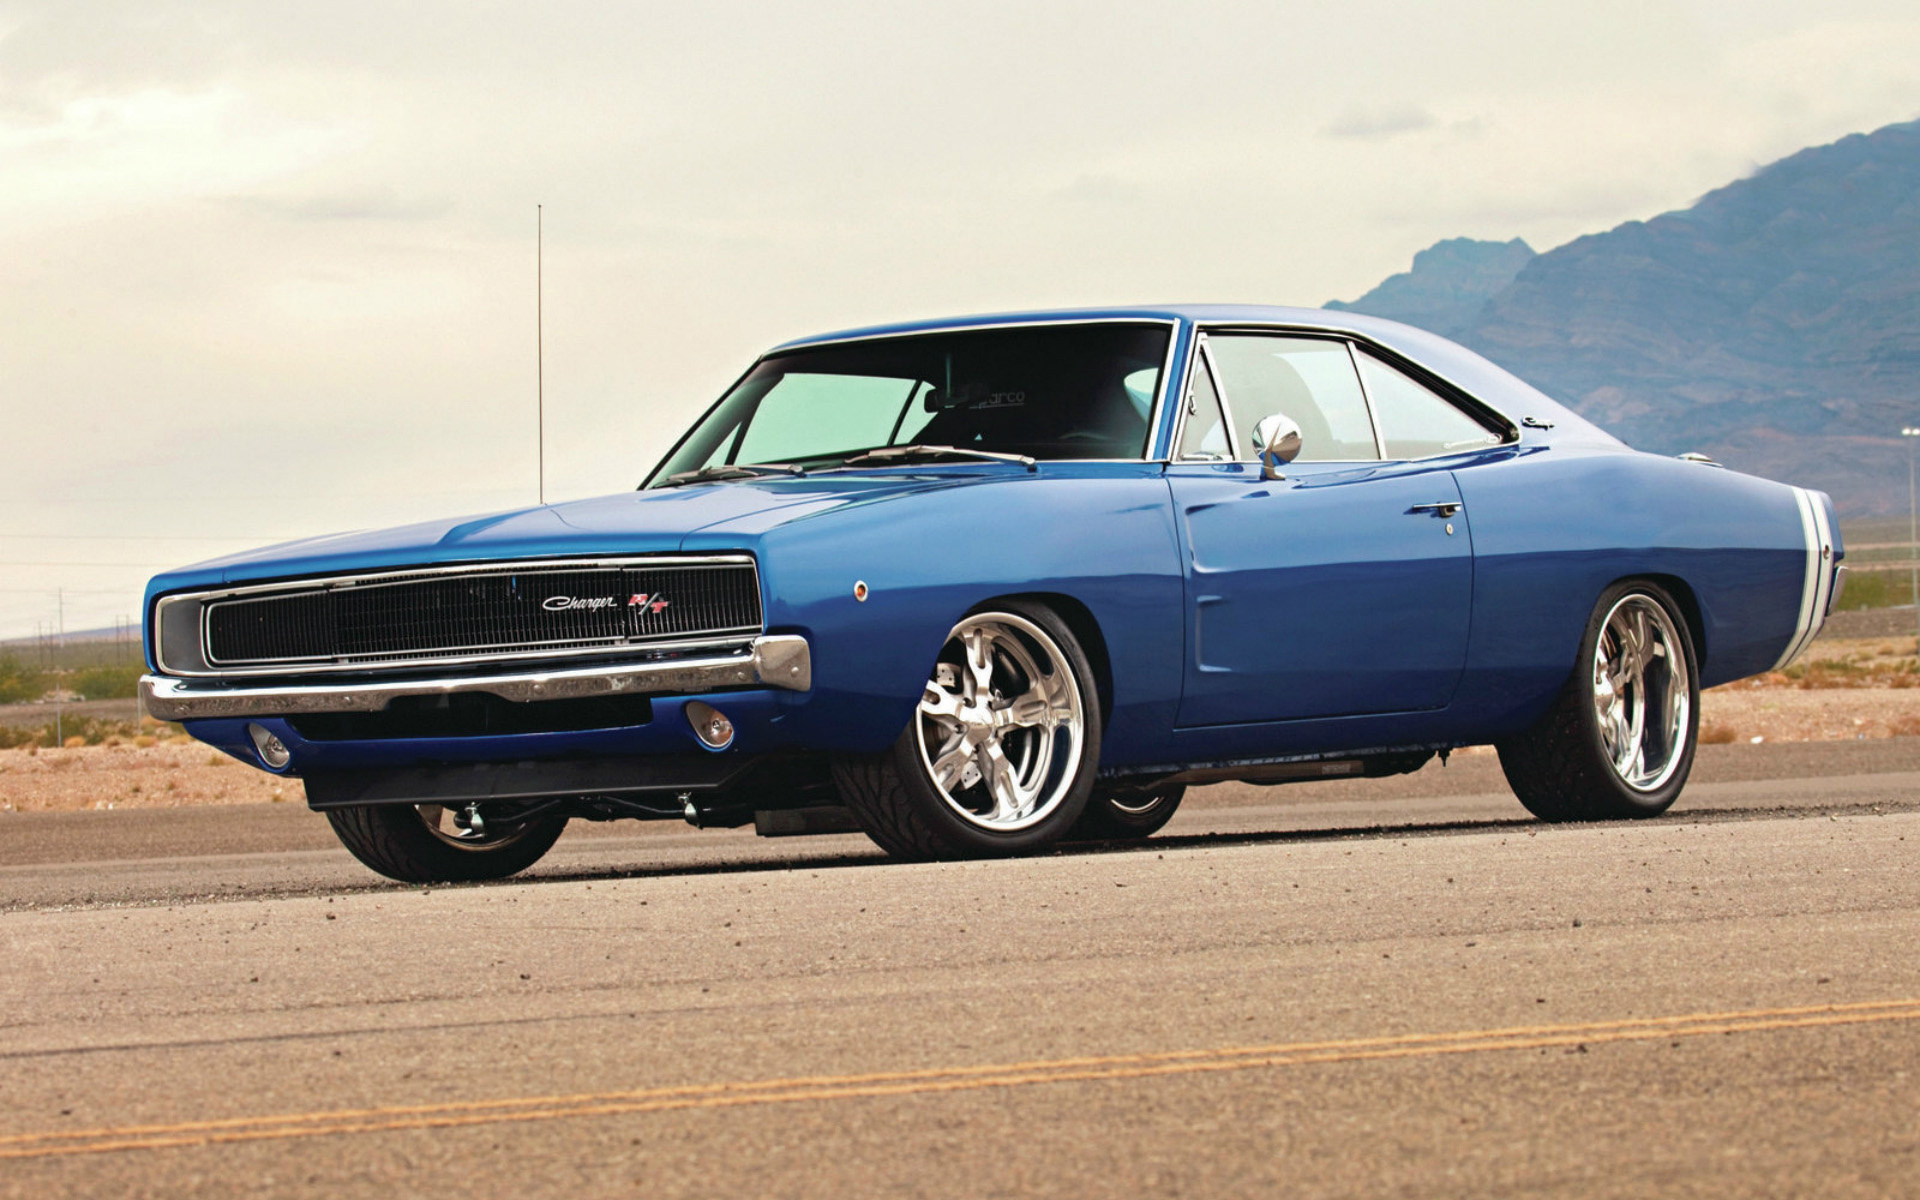 1968 dodge charger rt Full HD Wallpaper and Background Image ...